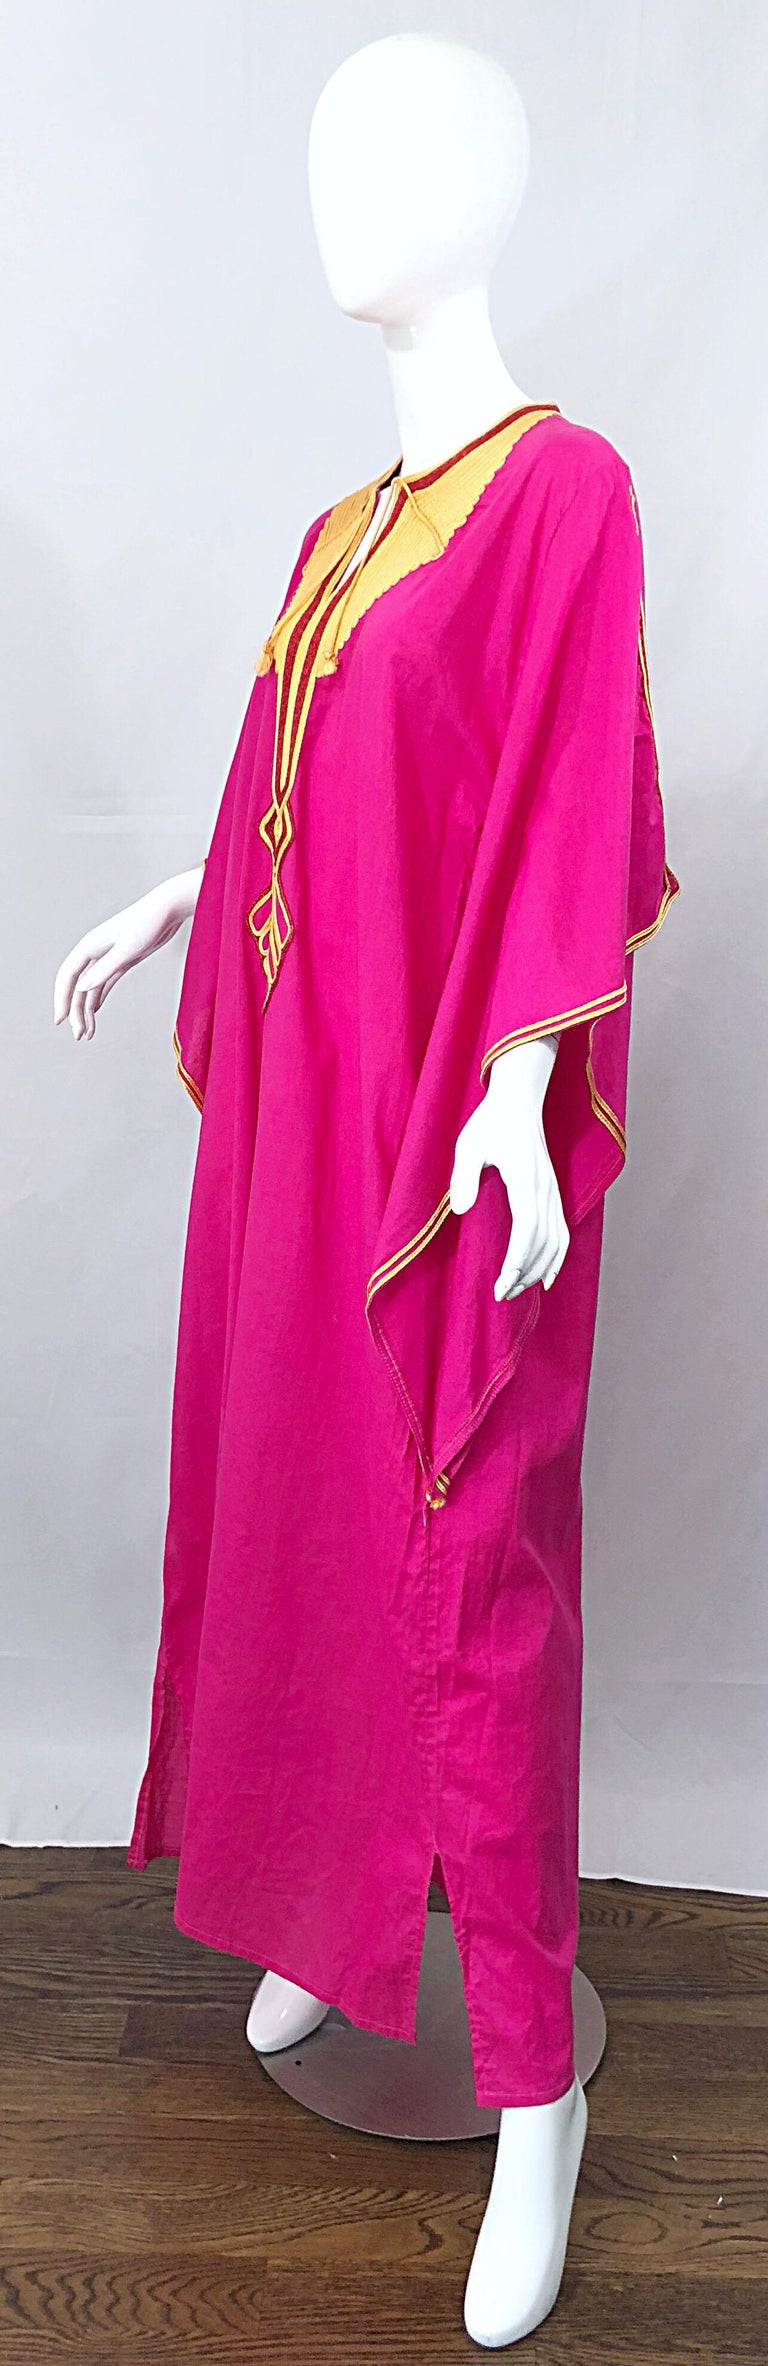 Amazing 1970s Hot Pink + Yellow Angel Sleeve Vintage 70s Kaftan Maxi Dress For Sale 1